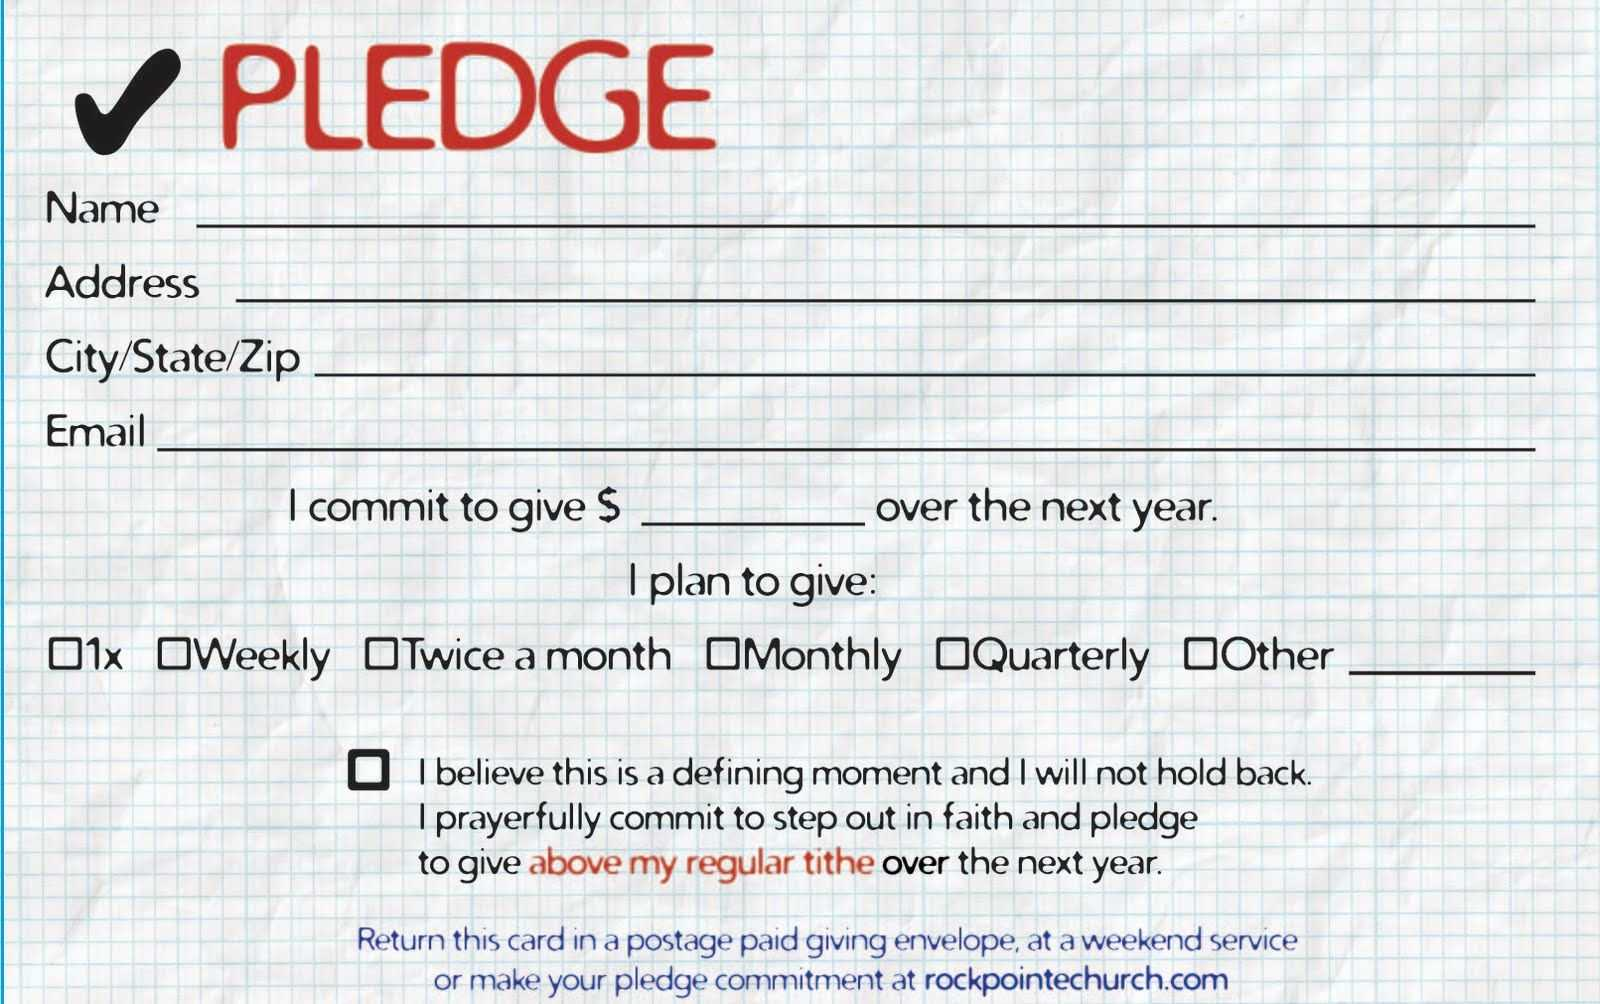 Pledge Cards For Churches   Pledge Card Templates   My Stuff Intended For Fundraising Pledge Card Template